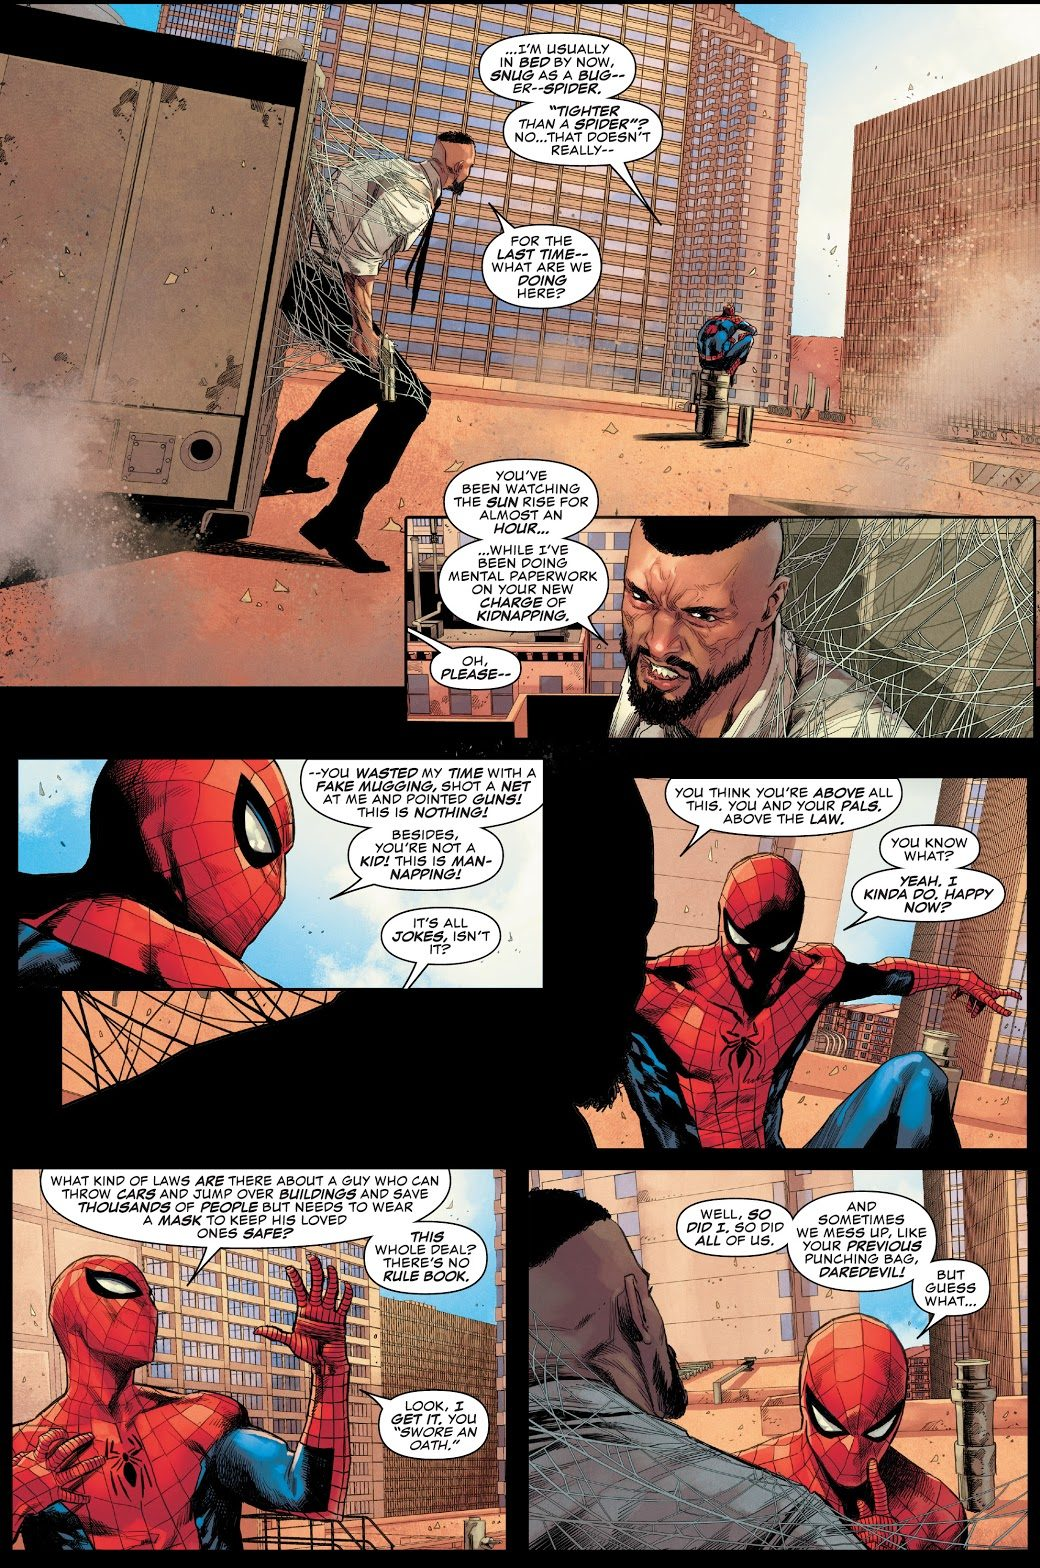 Spider-Man On Why Super Heroes Have To Wear Masks